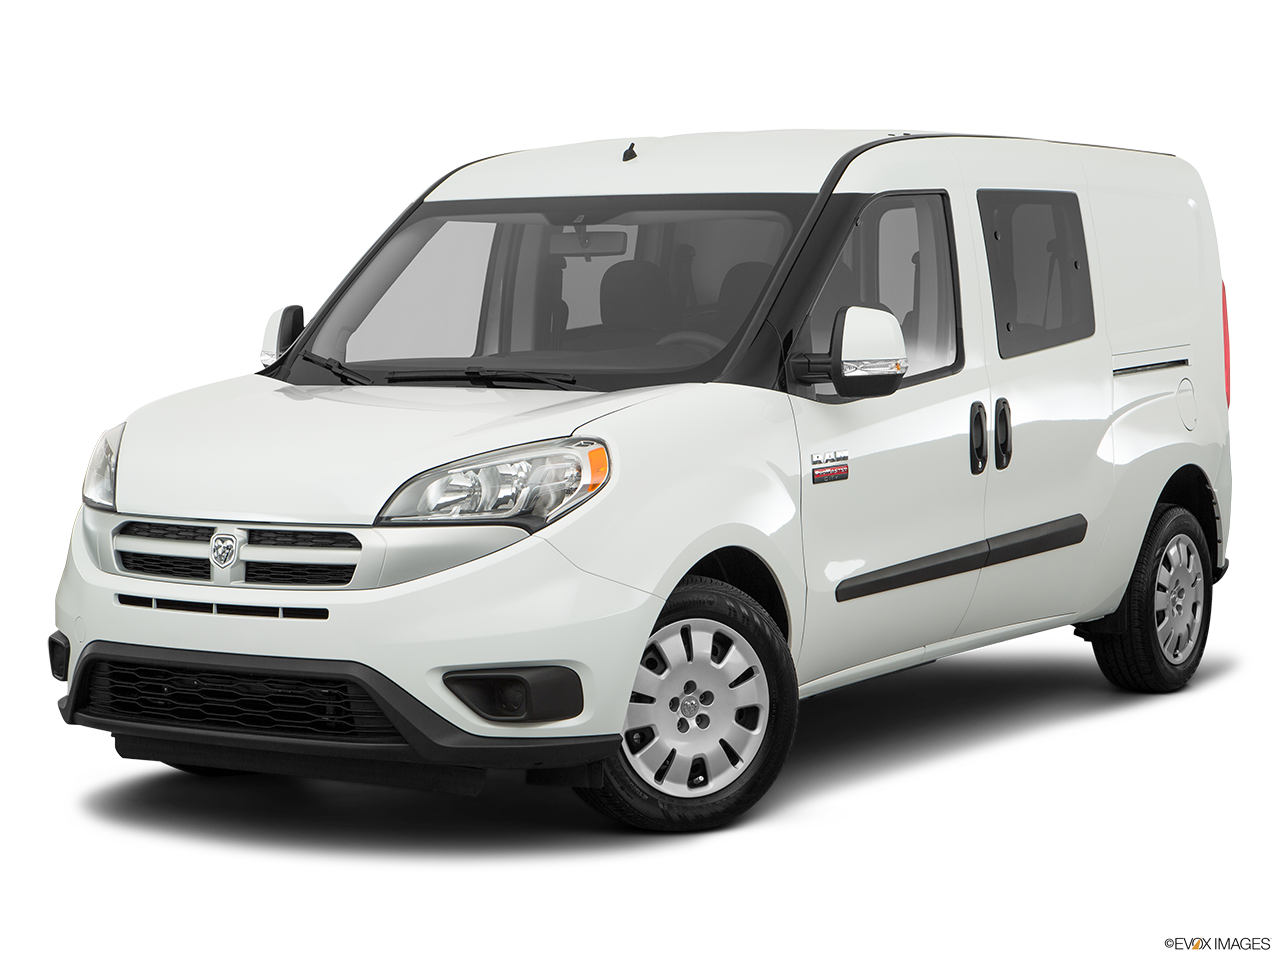 Test Drive A 2017 RAM Promaster City at Arrigo Dodge Chrysler Jeep Ram Ft. Pierce in Fort Pierce